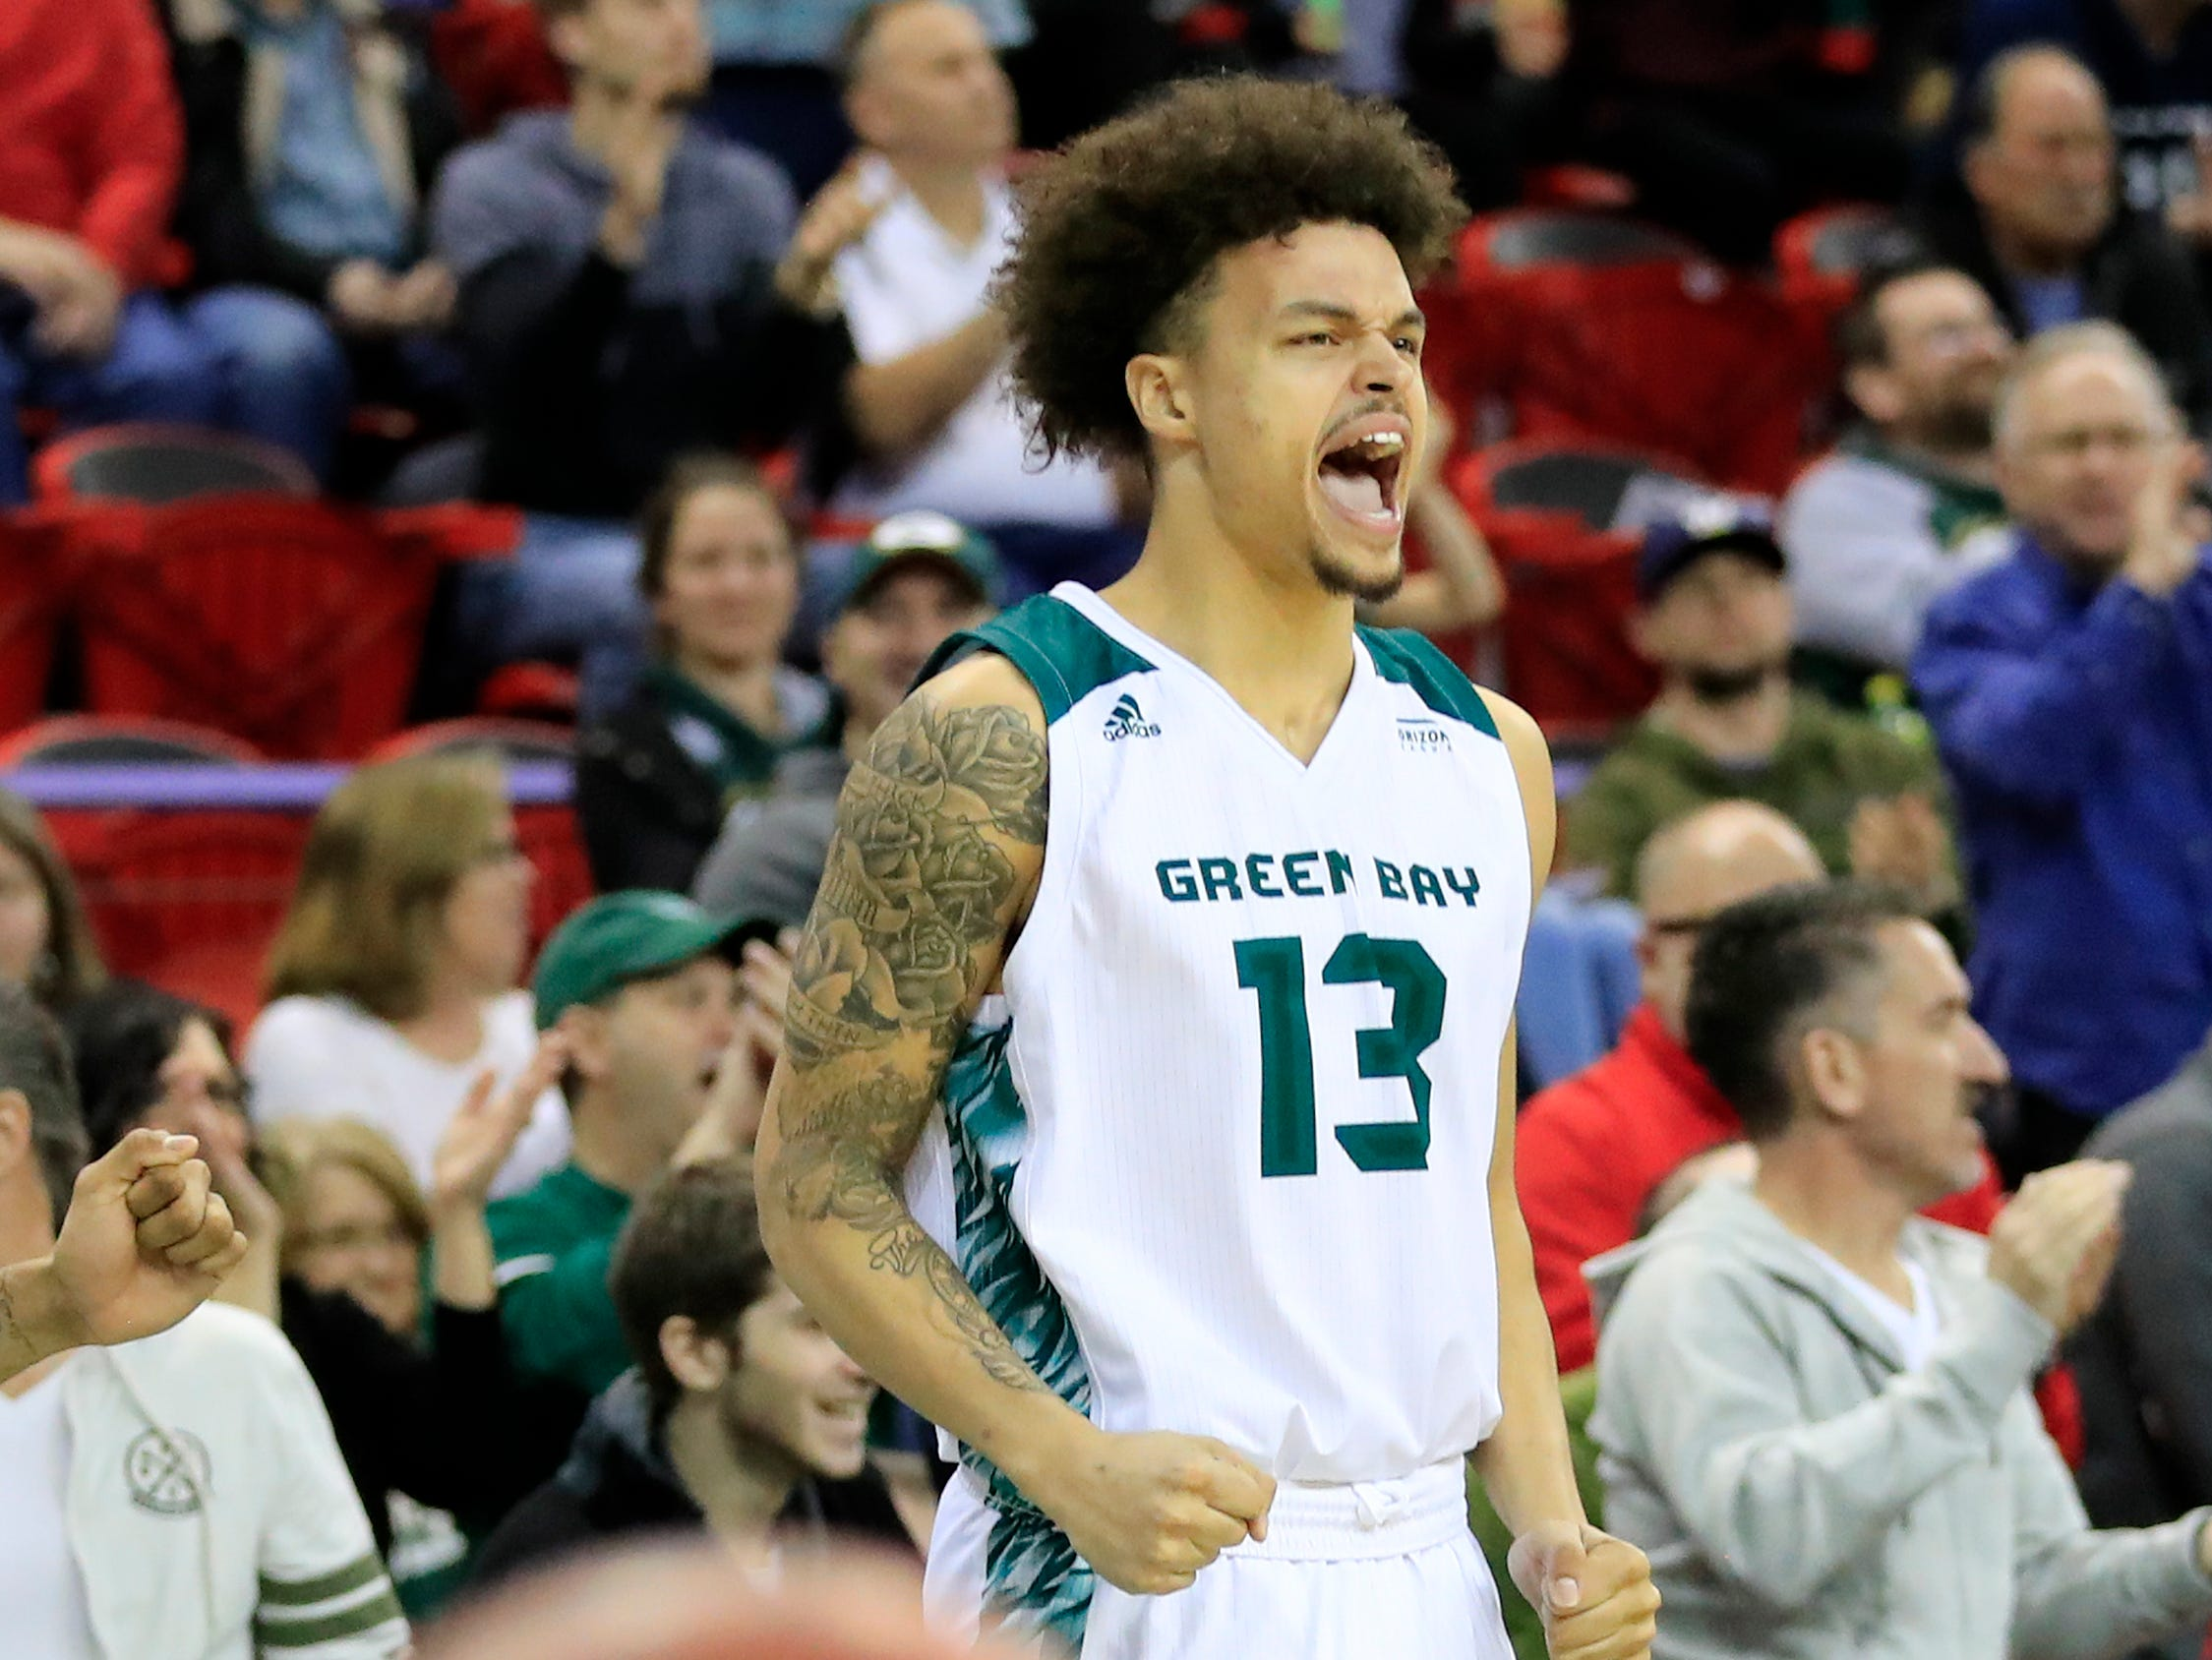 Green Bay Phoenix guard Trevian Bell (13) celebrates after a basket against the Cleveland State Vikings in a Horizon League basketball game at the Resch Center on Saturday, January 5, 2019 in Green Bay, Wis.